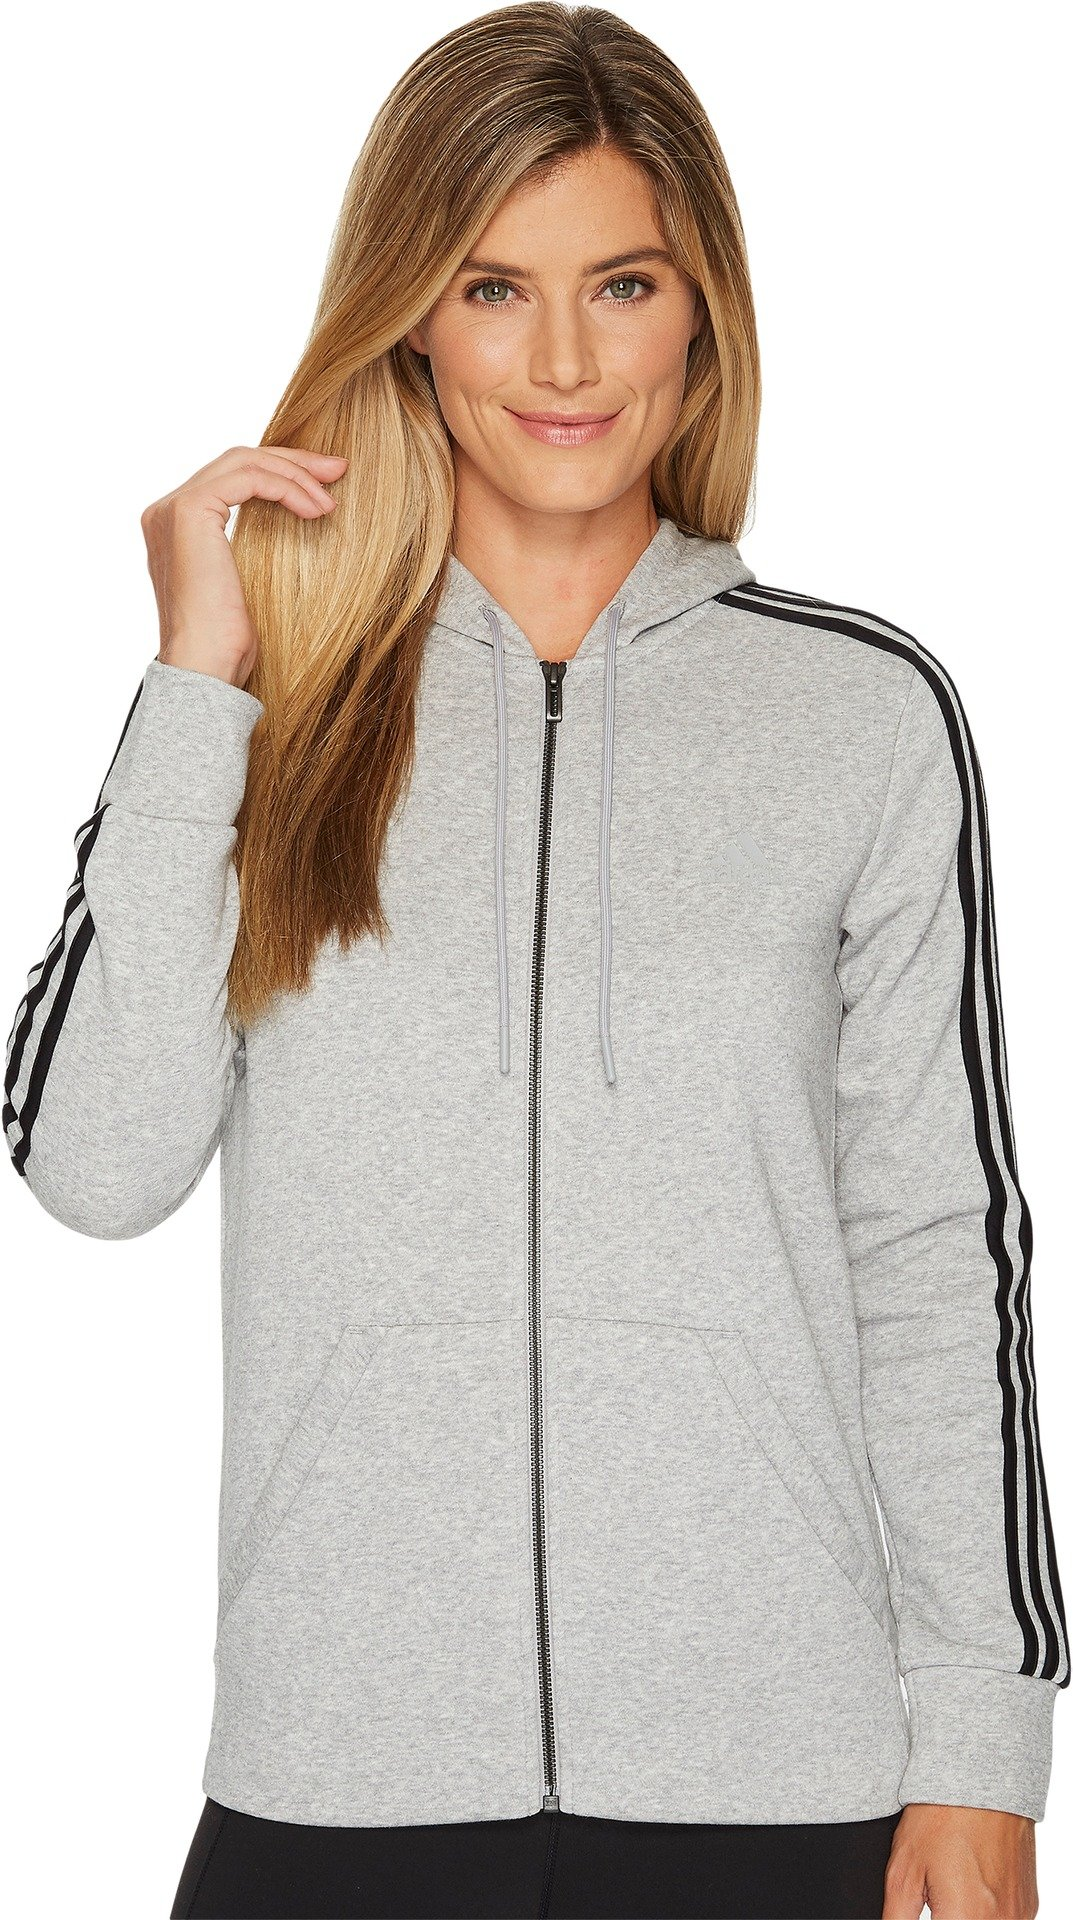 adidas Women's Essentials Cotton Fleece 3-Stripe Full Zip Hoodie, Medium Grey Heather/Black, X-Large